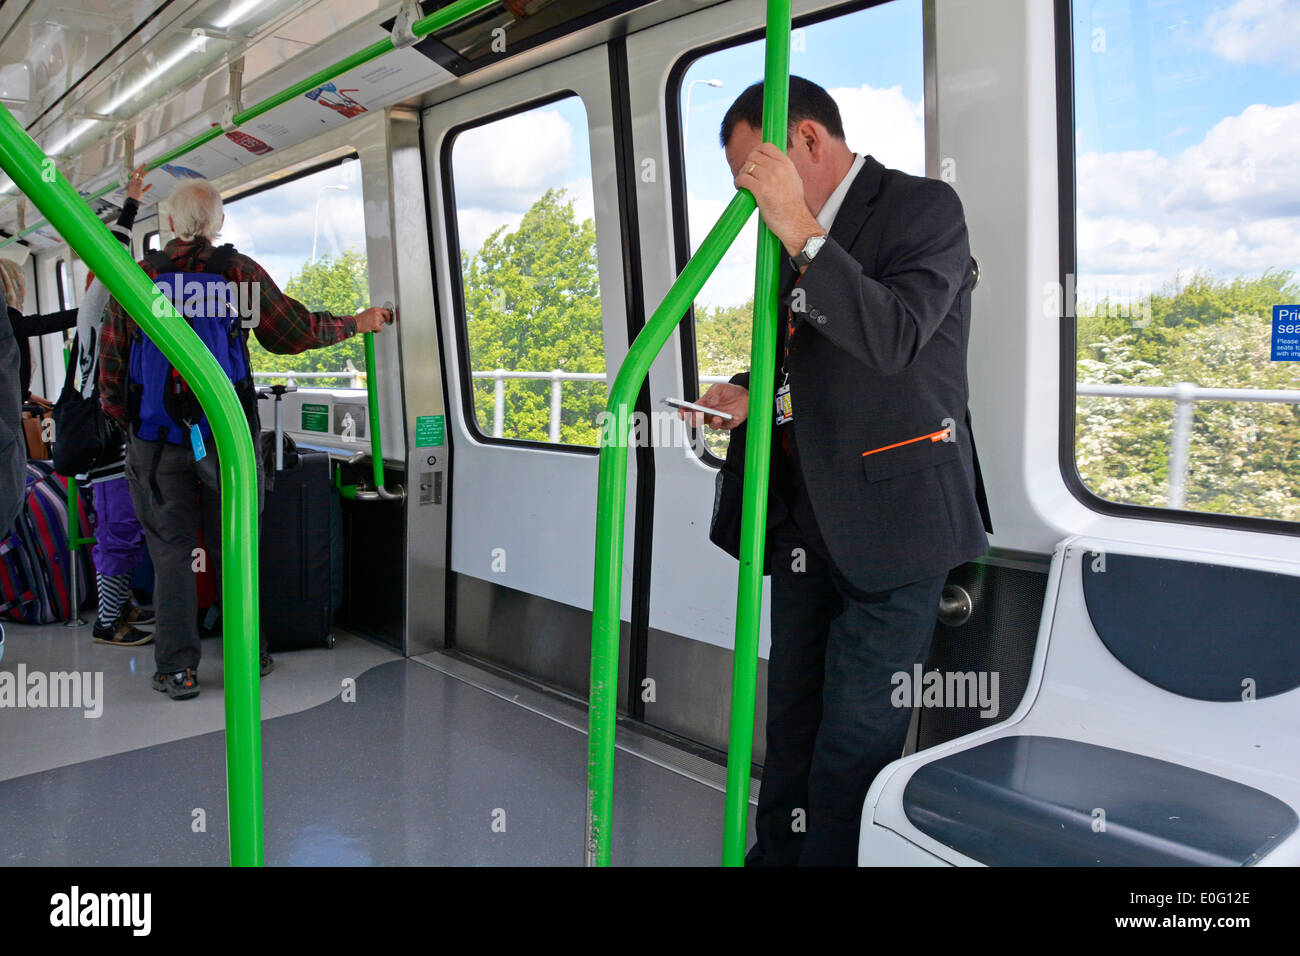 Passengers on Gatwick Airport people mover shuttle train interior joining North & South terminals Crawley West Sussex England UK - Stock Image